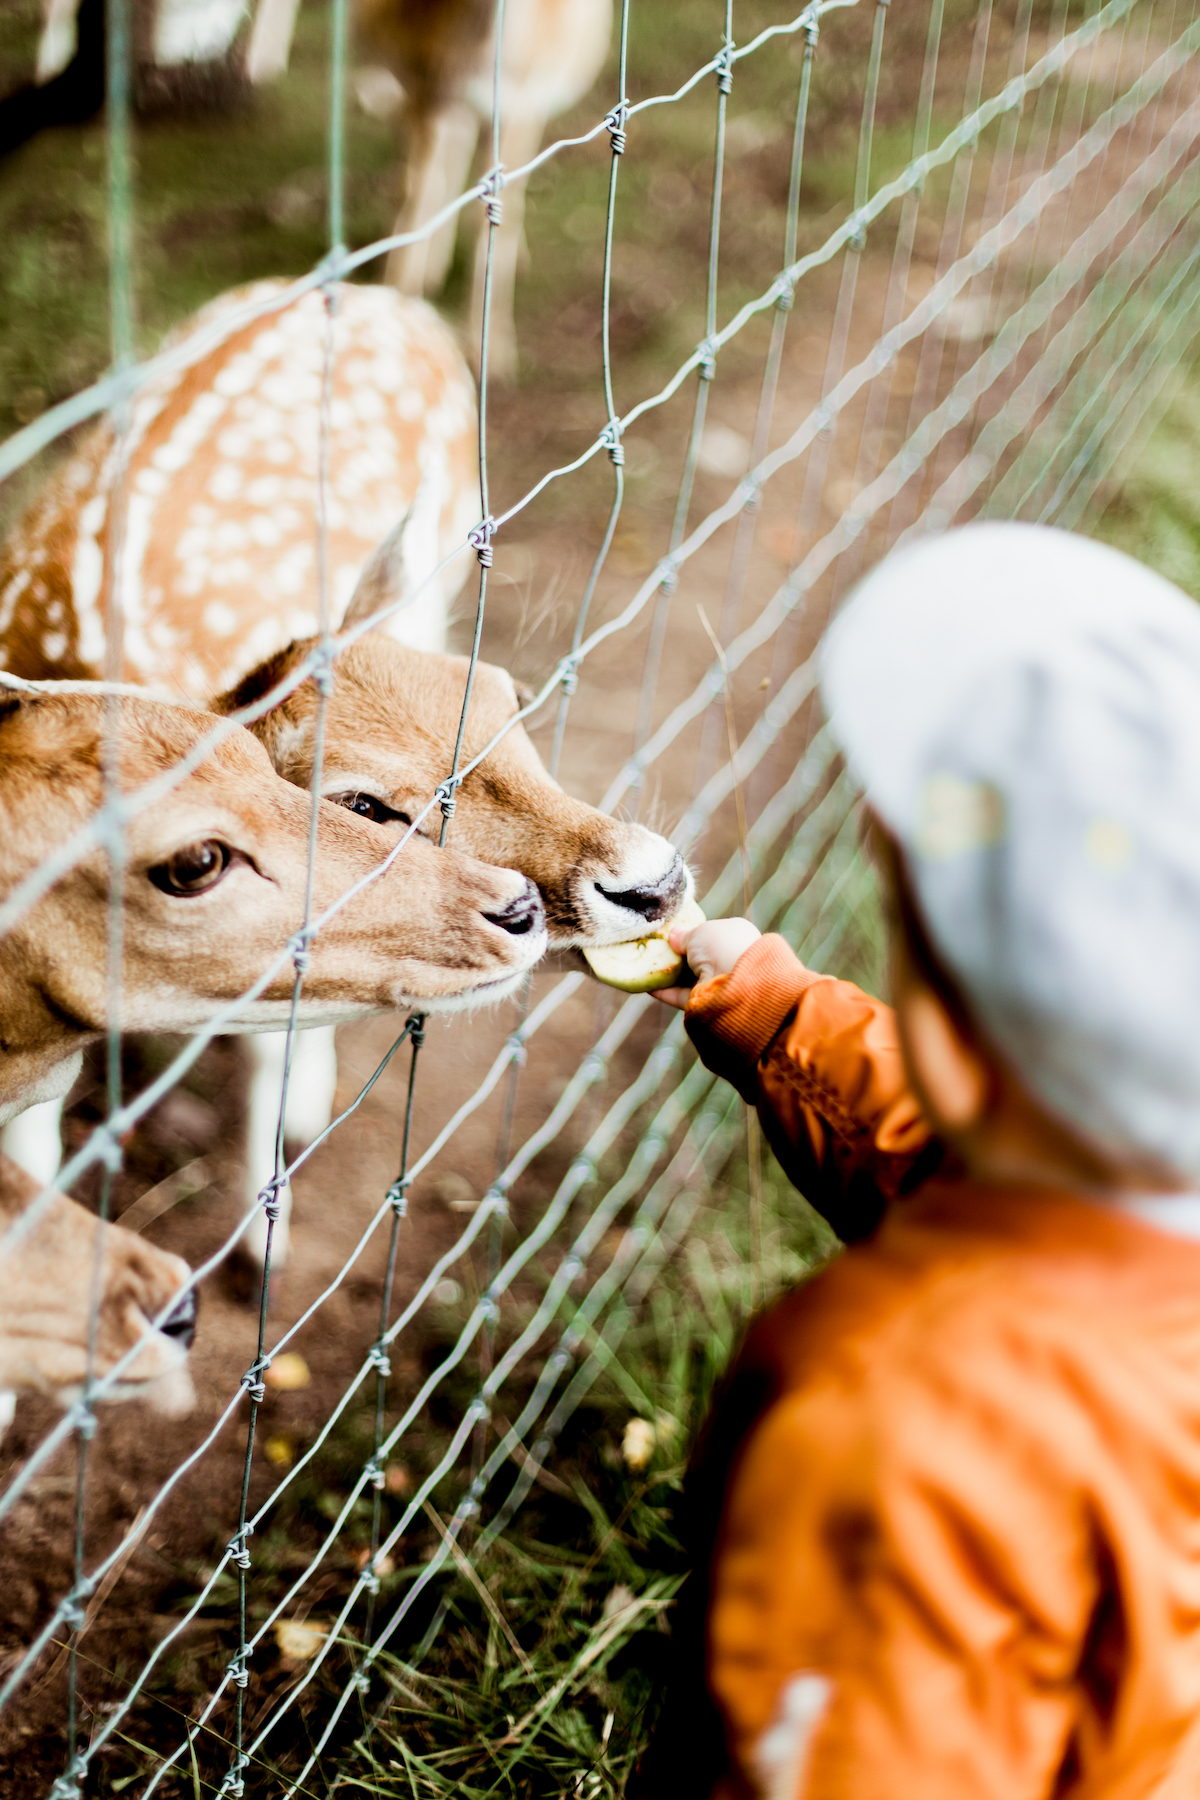 boy feeding deer through fence as experience gift idea